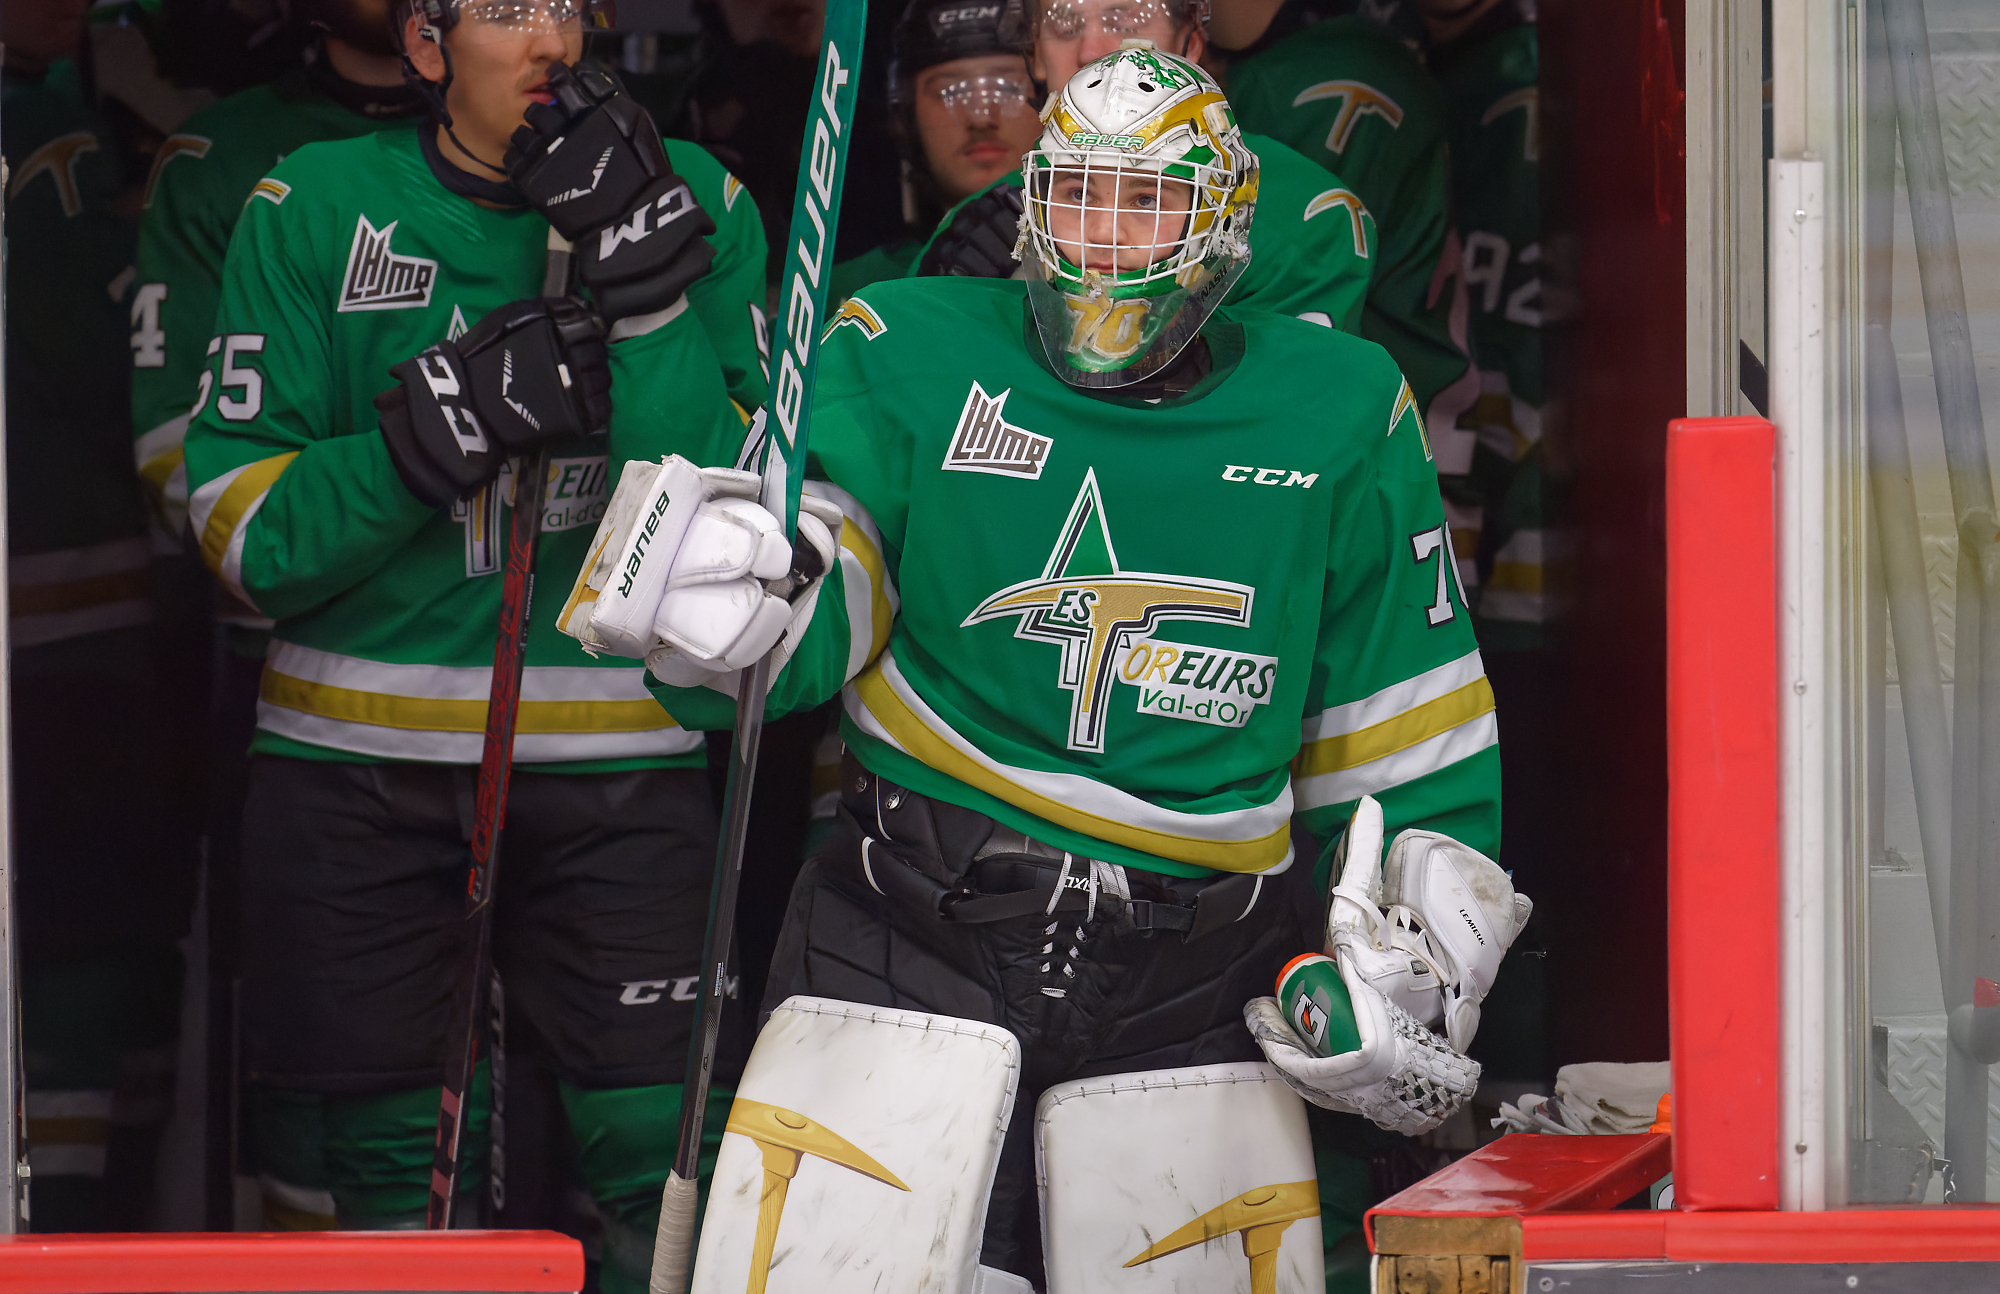 Jonathan Lemieux - Foreurs Val-d'Or